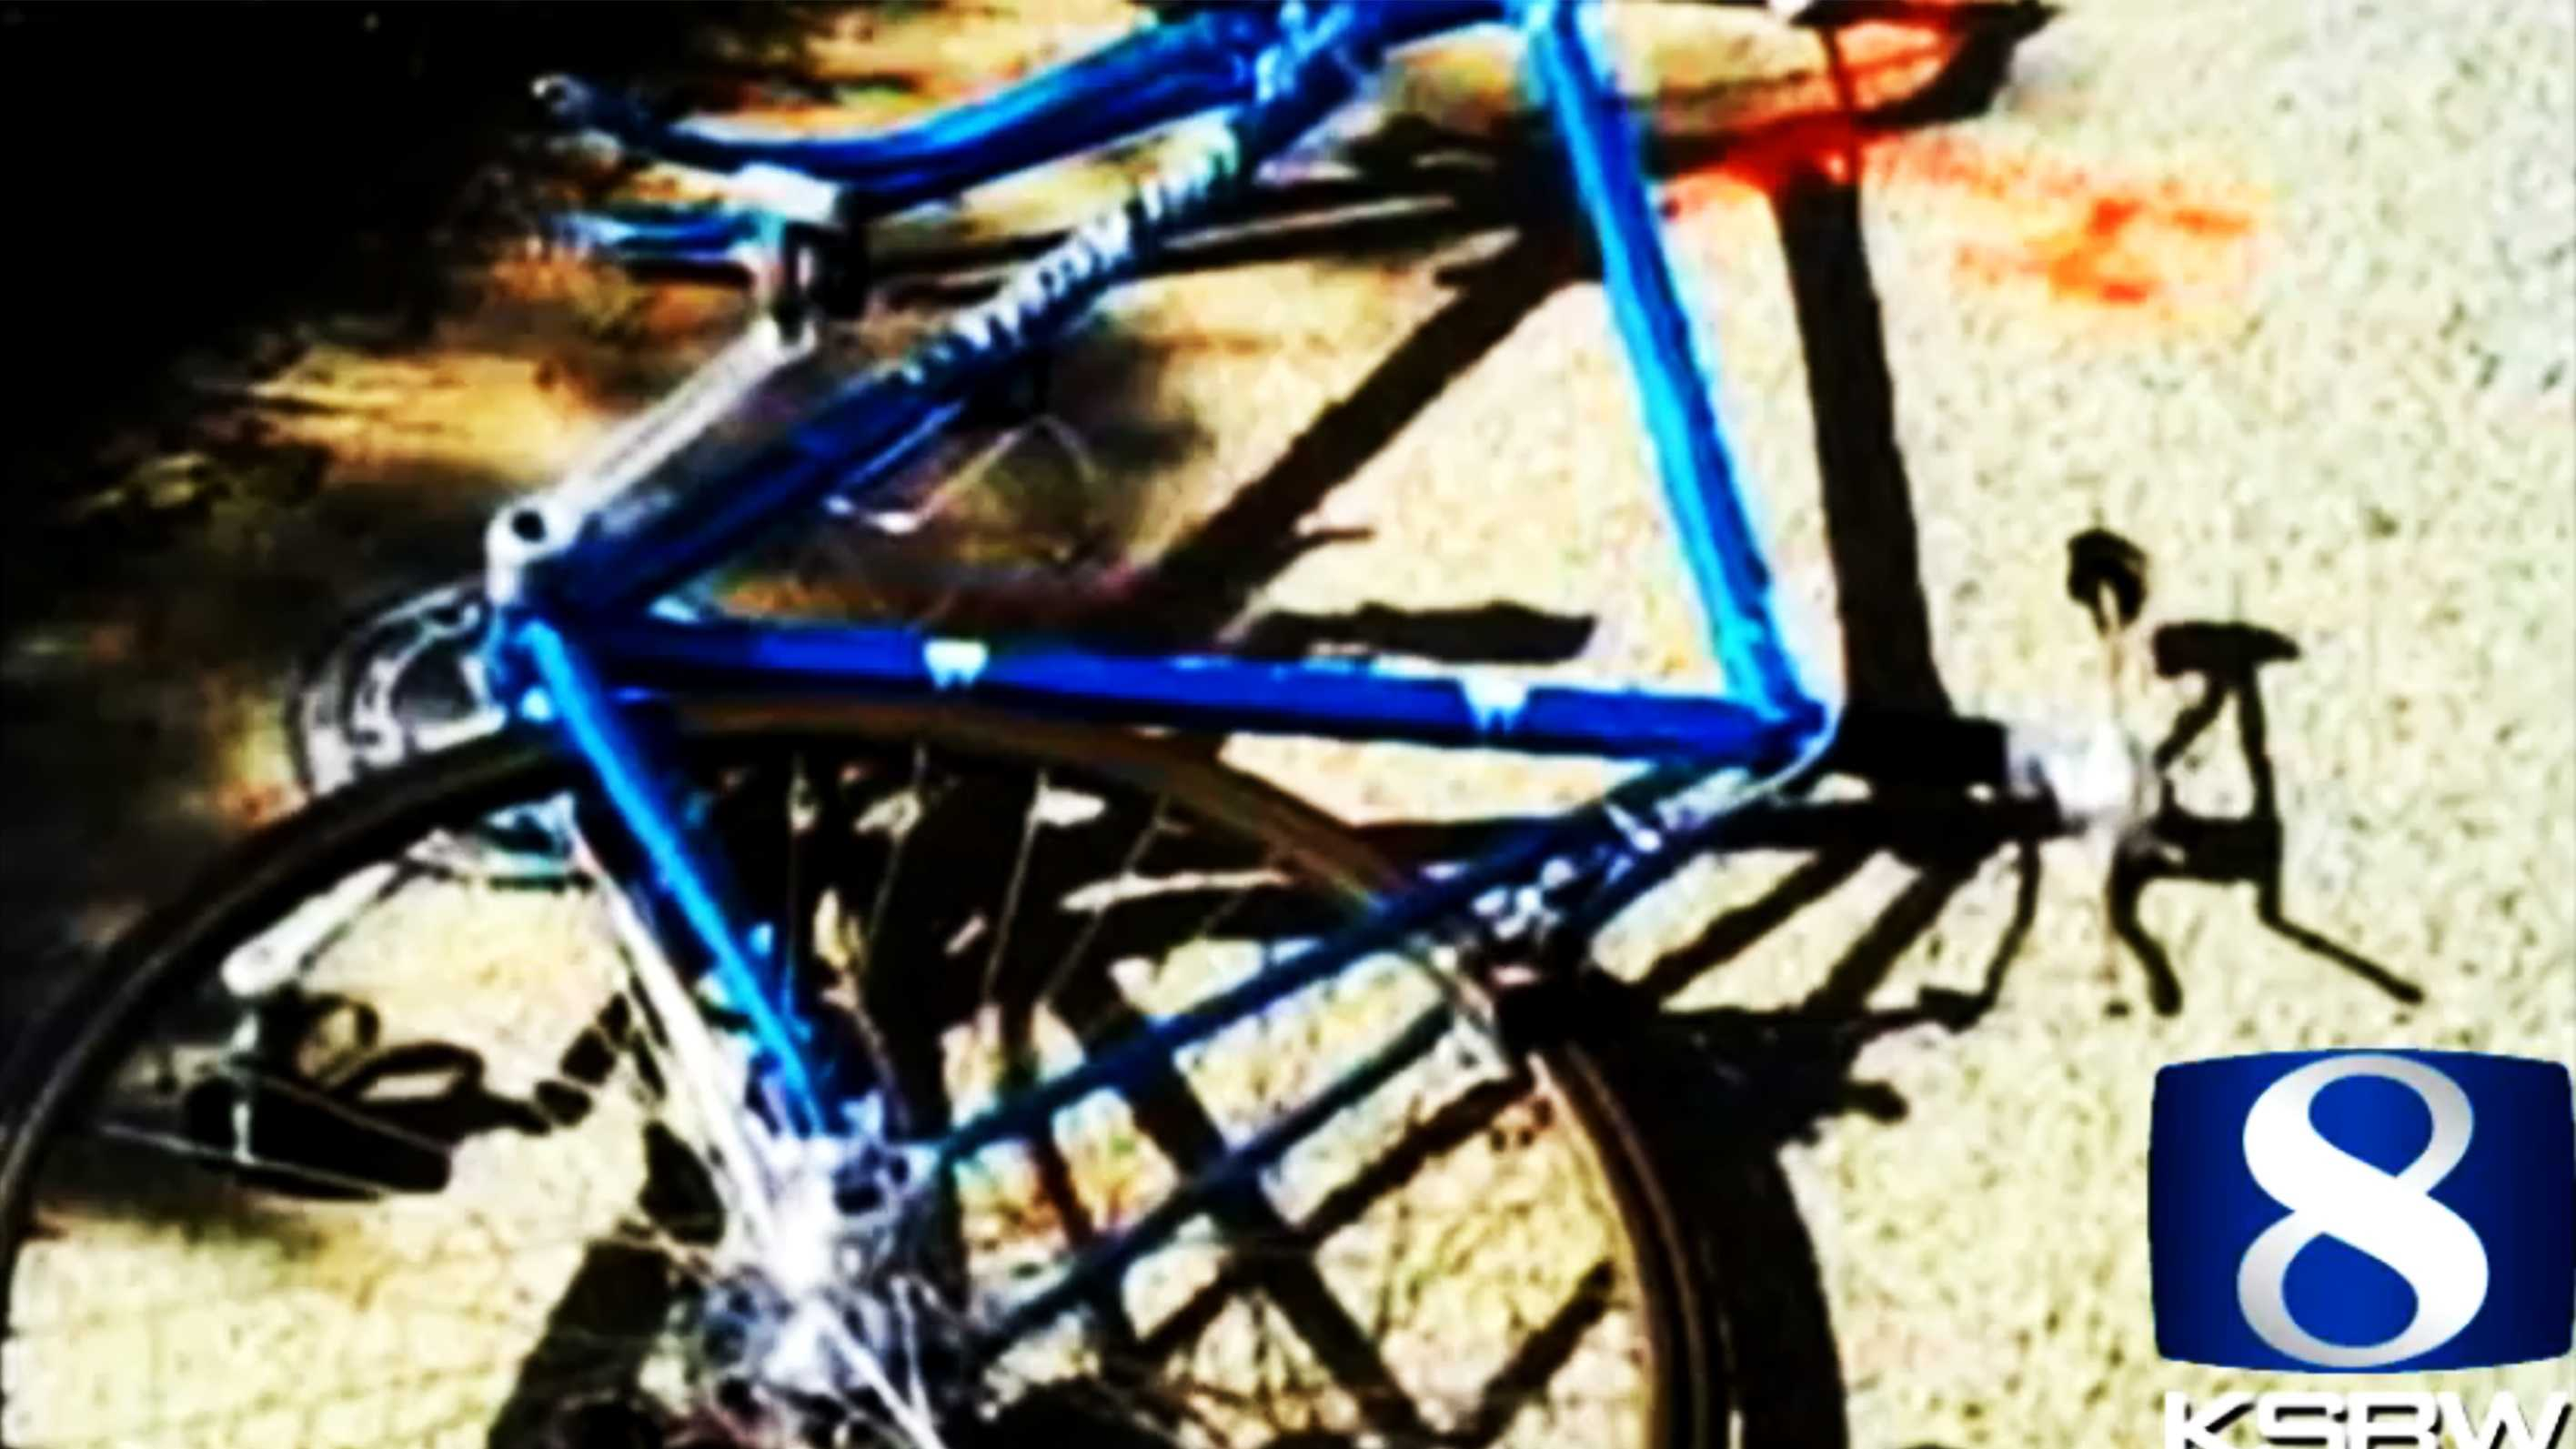 Joshua Alper's blue bicycle is seen after the crash.